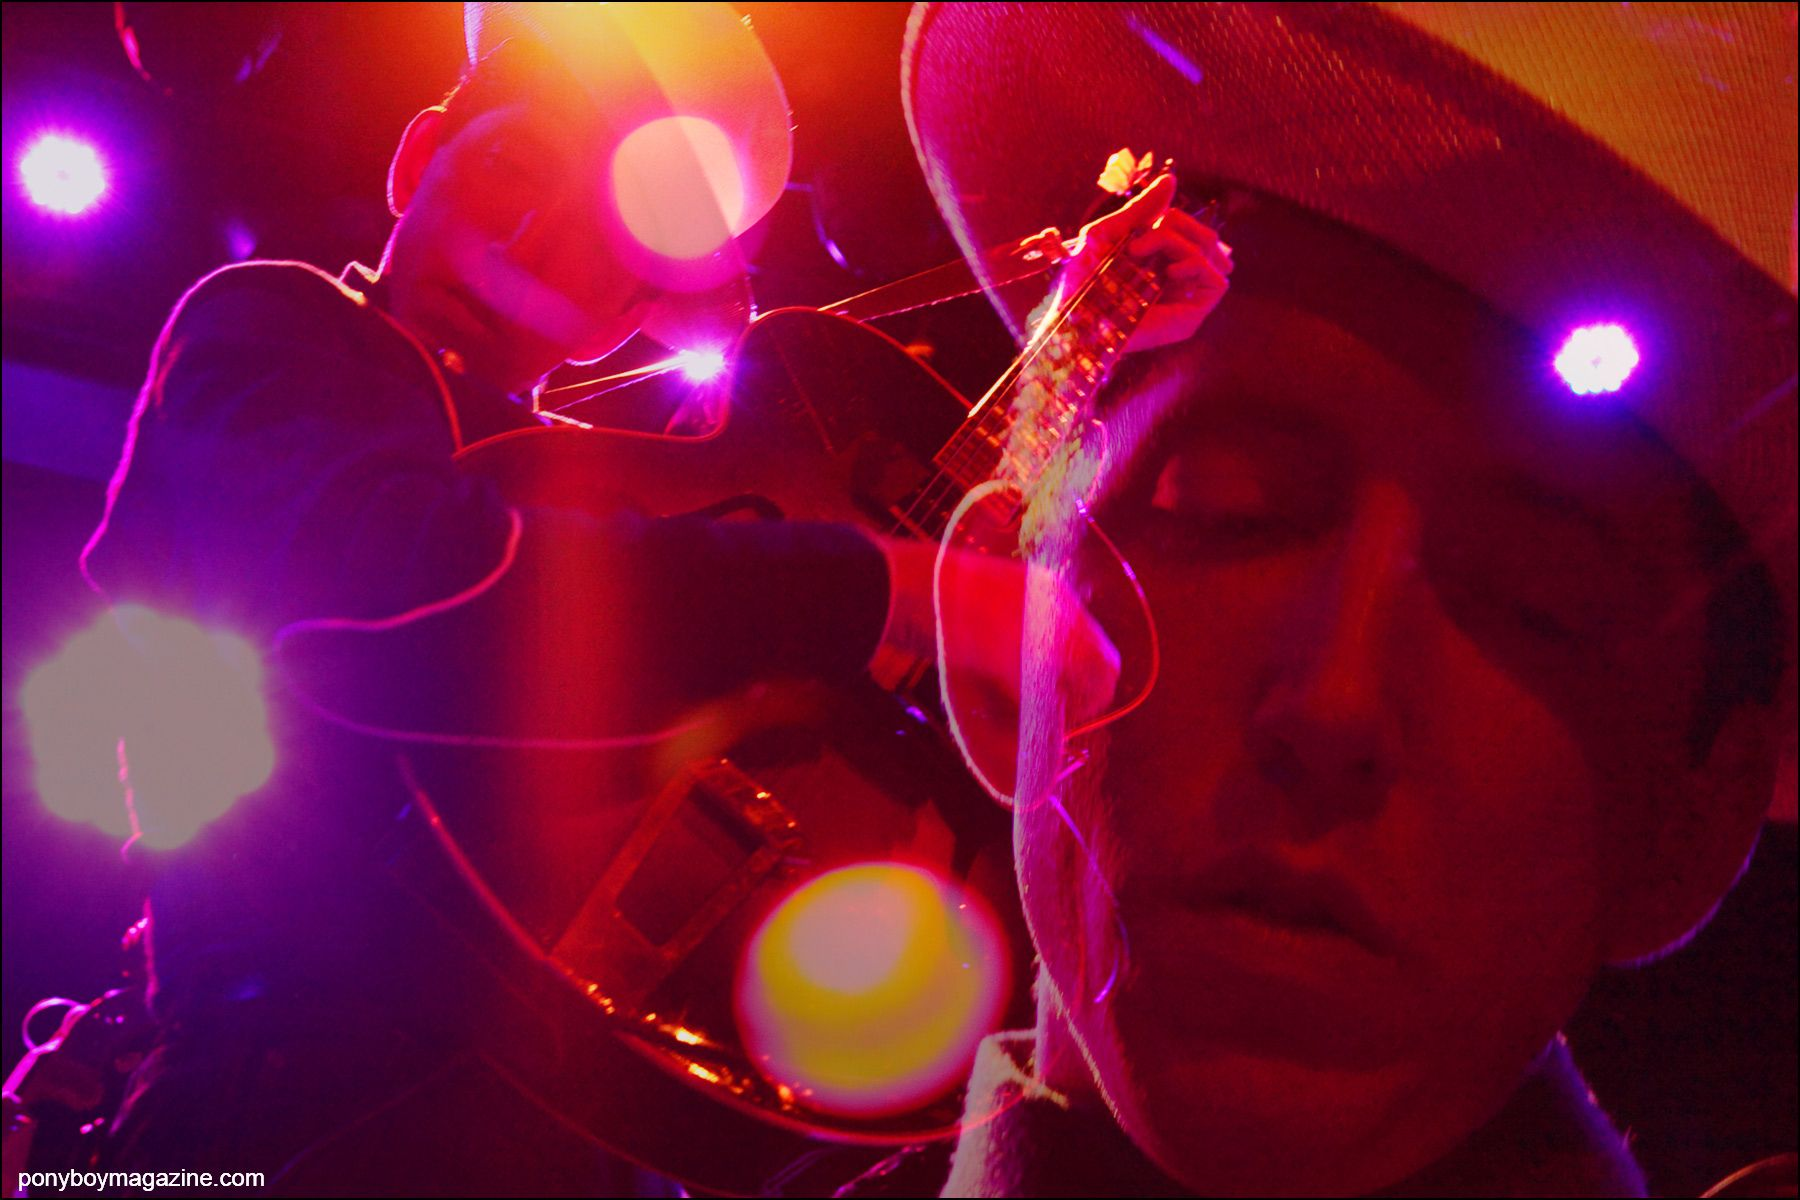 Colorful photographs of musician Pokey LaFarge, photographed onstage at Bowery Ballroom in New York City. Photography by Alexander Thompson for Ponyboy magazine NY.